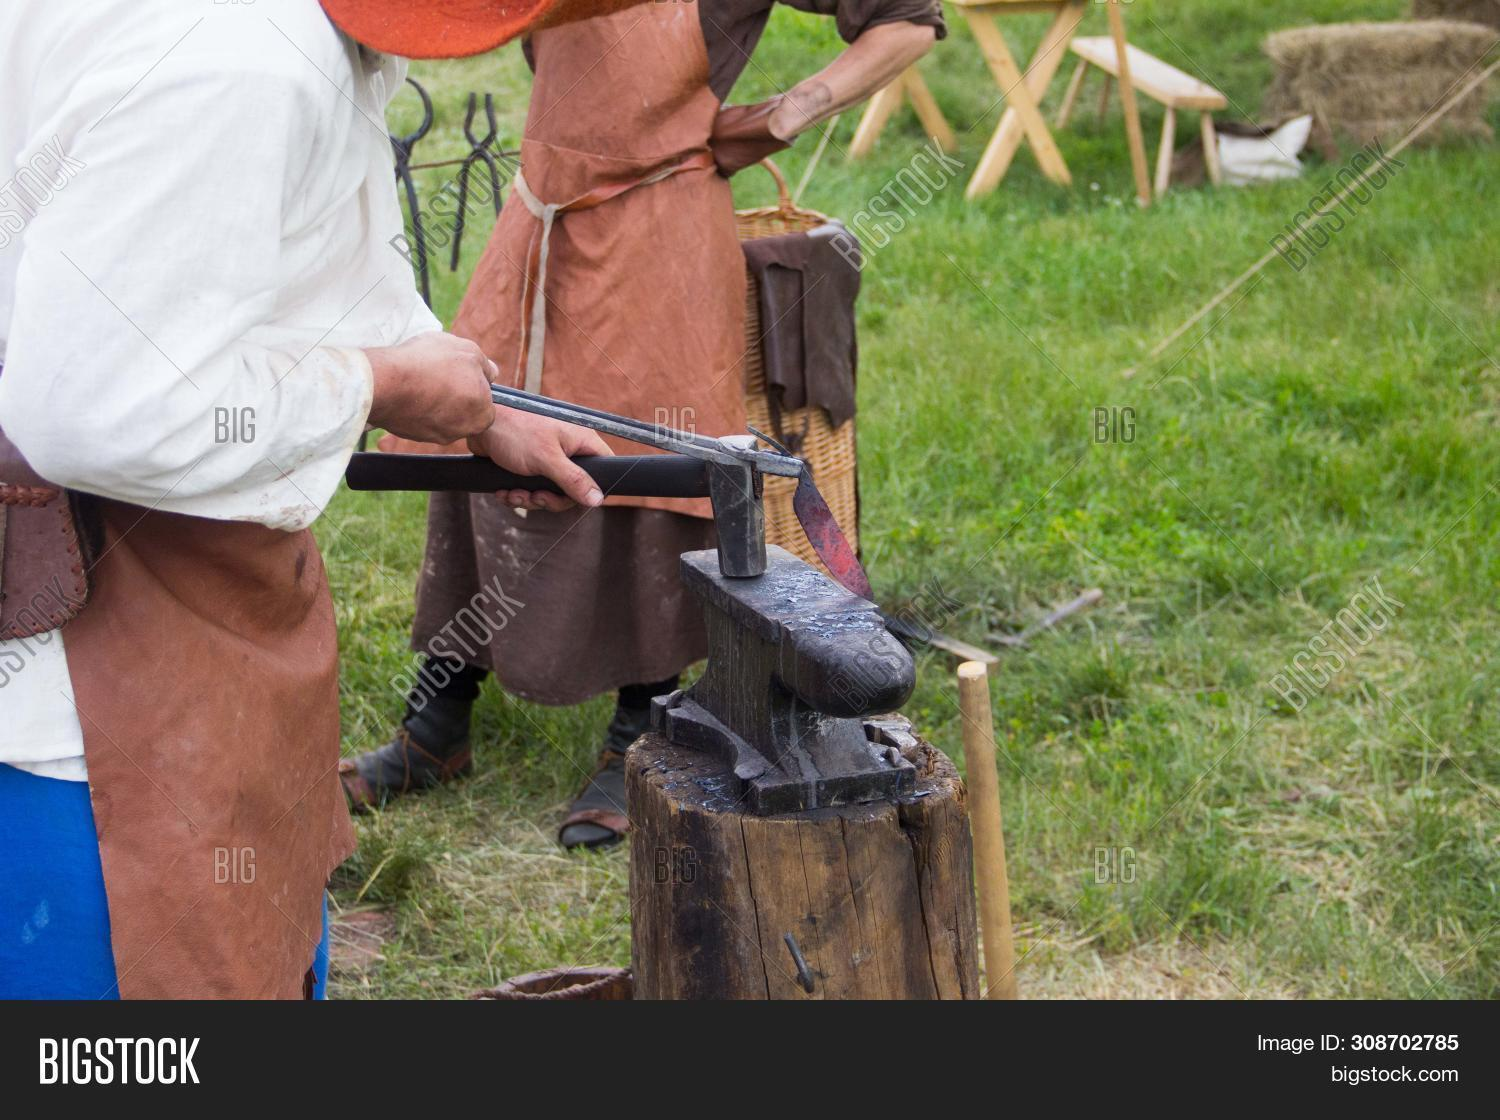 antique,anvil,black,blacksmith,bright,craft,craftsman,craftsmanship,dirty,equipment,farrier,fire,flame,forge,forging,glowing,hammer,hand,handwork,heat,heavy,horseshoe,hot,industrial,industry,iron,job,man,manual,manufacturing,metal,metalwork,molten,occupation,old,red,retro,shop,skill,smith,smithy,spark,steel,strength,tool,traditional,work,worker,workshop